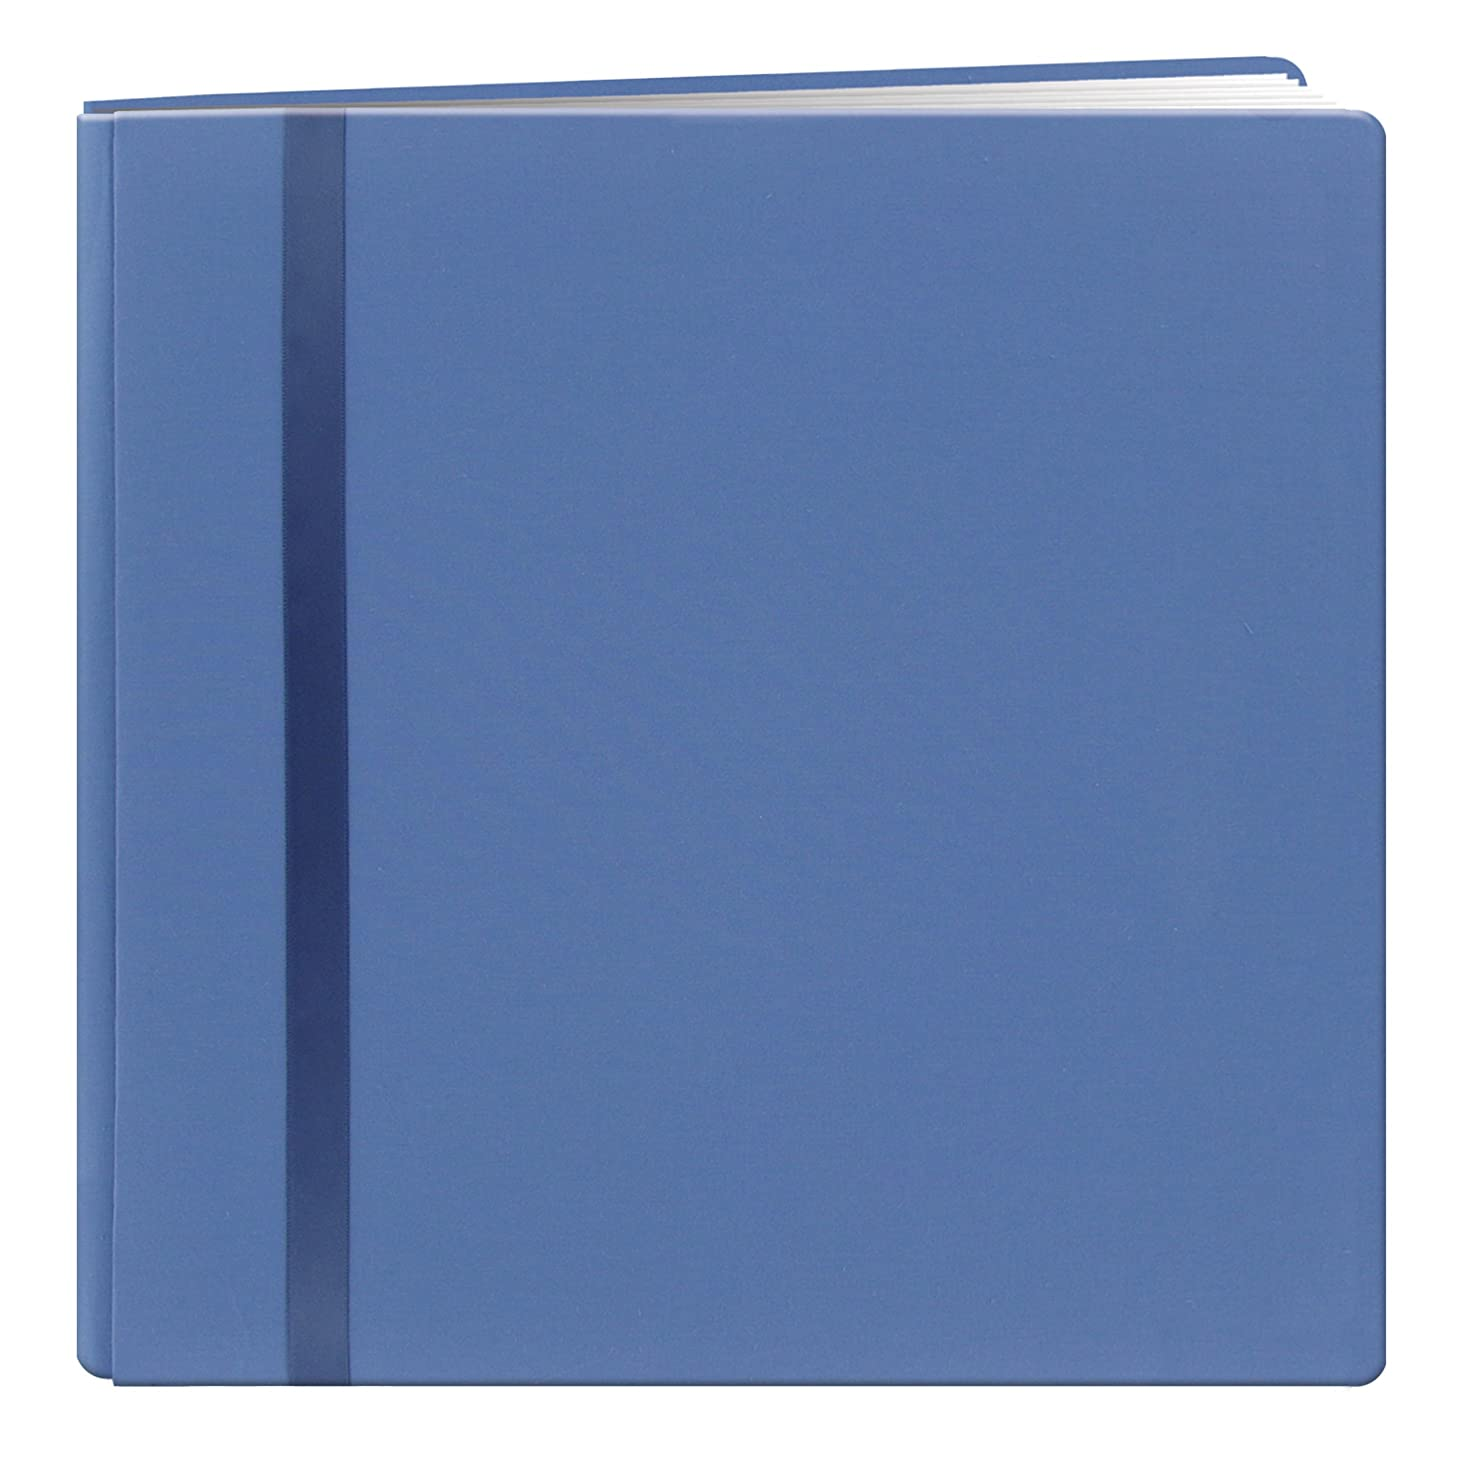 Pioneer 8 Inch by 8 Inch Snapload Deluxe Fabric with Ribbon Trim Cover Memory Book, Blue